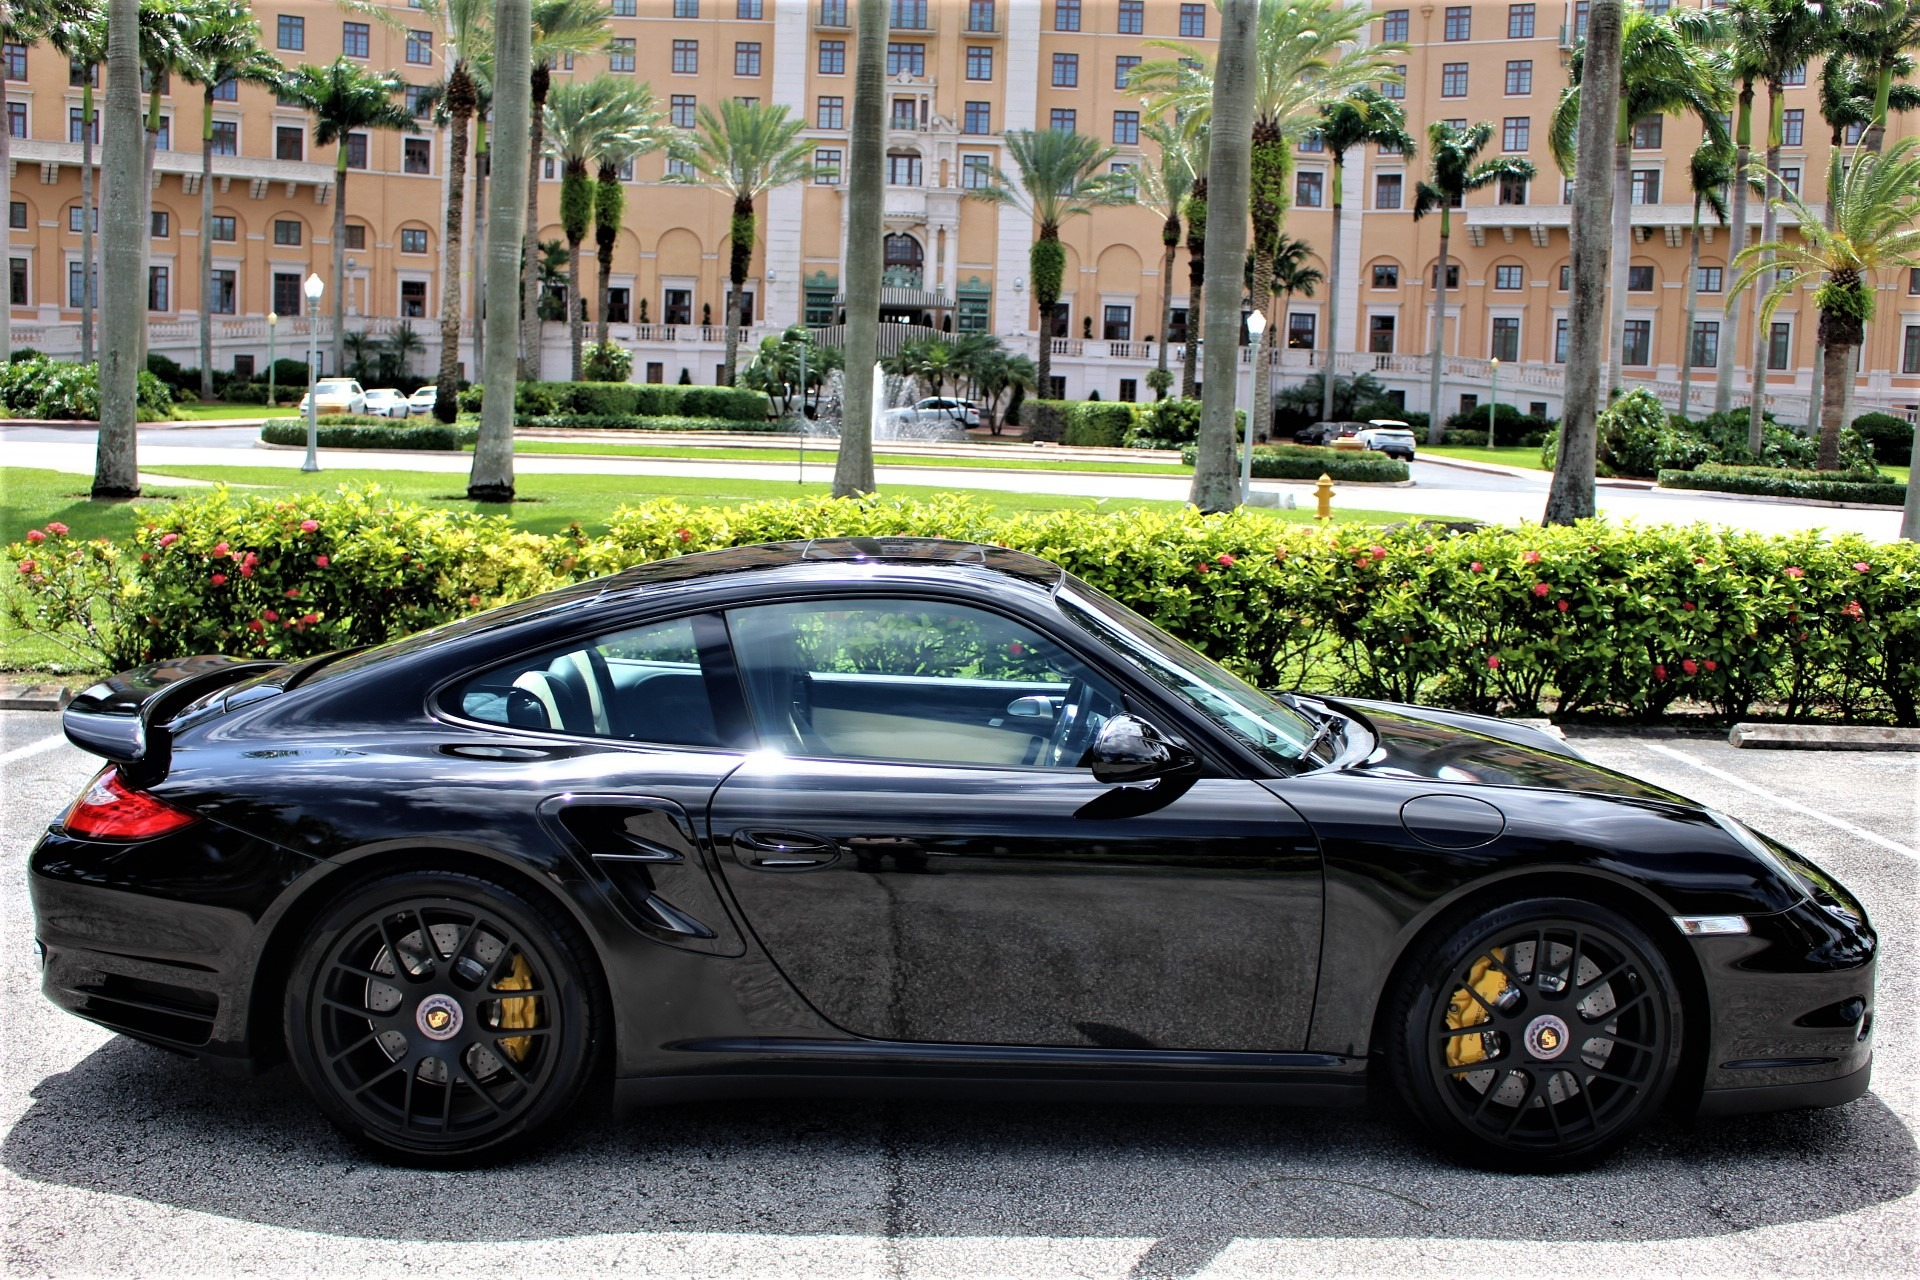 Used 2011 Porsche 911 Turbo S for sale Sold at The Gables Sports Cars in Miami FL 33146 1